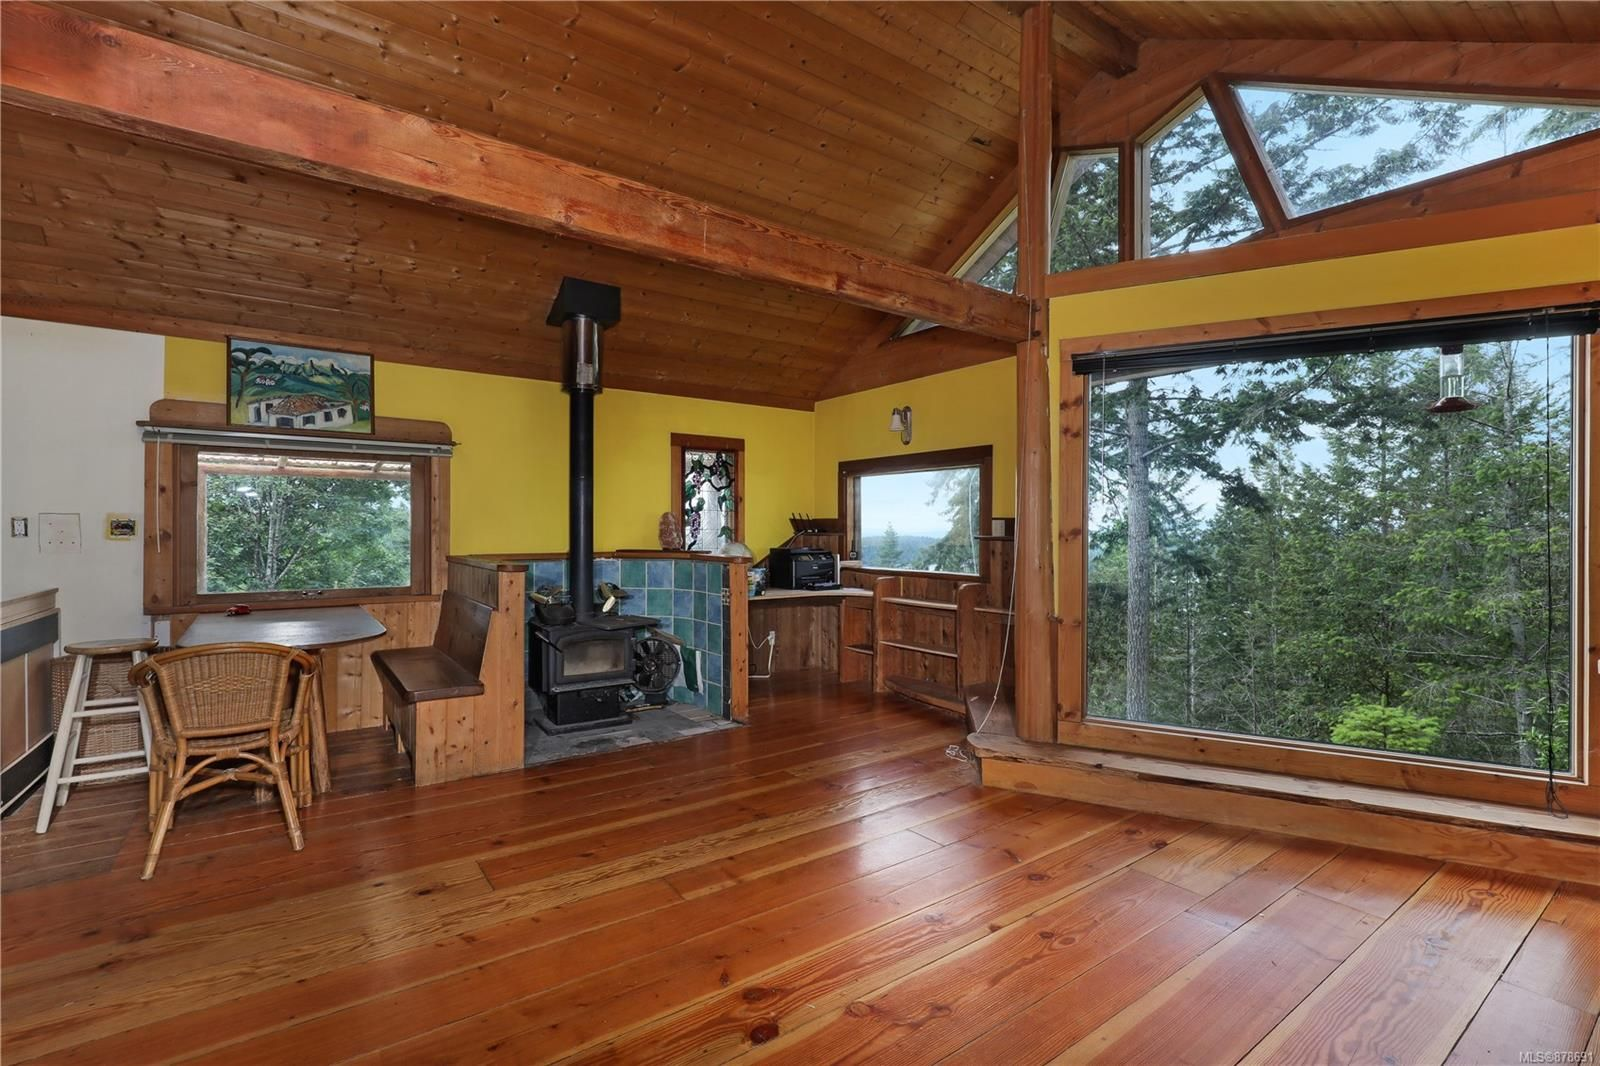 Photo 39: Photos: 979 Thunder Rd in : Isl Cortes Island House for sale (Islands)  : MLS®# 878691